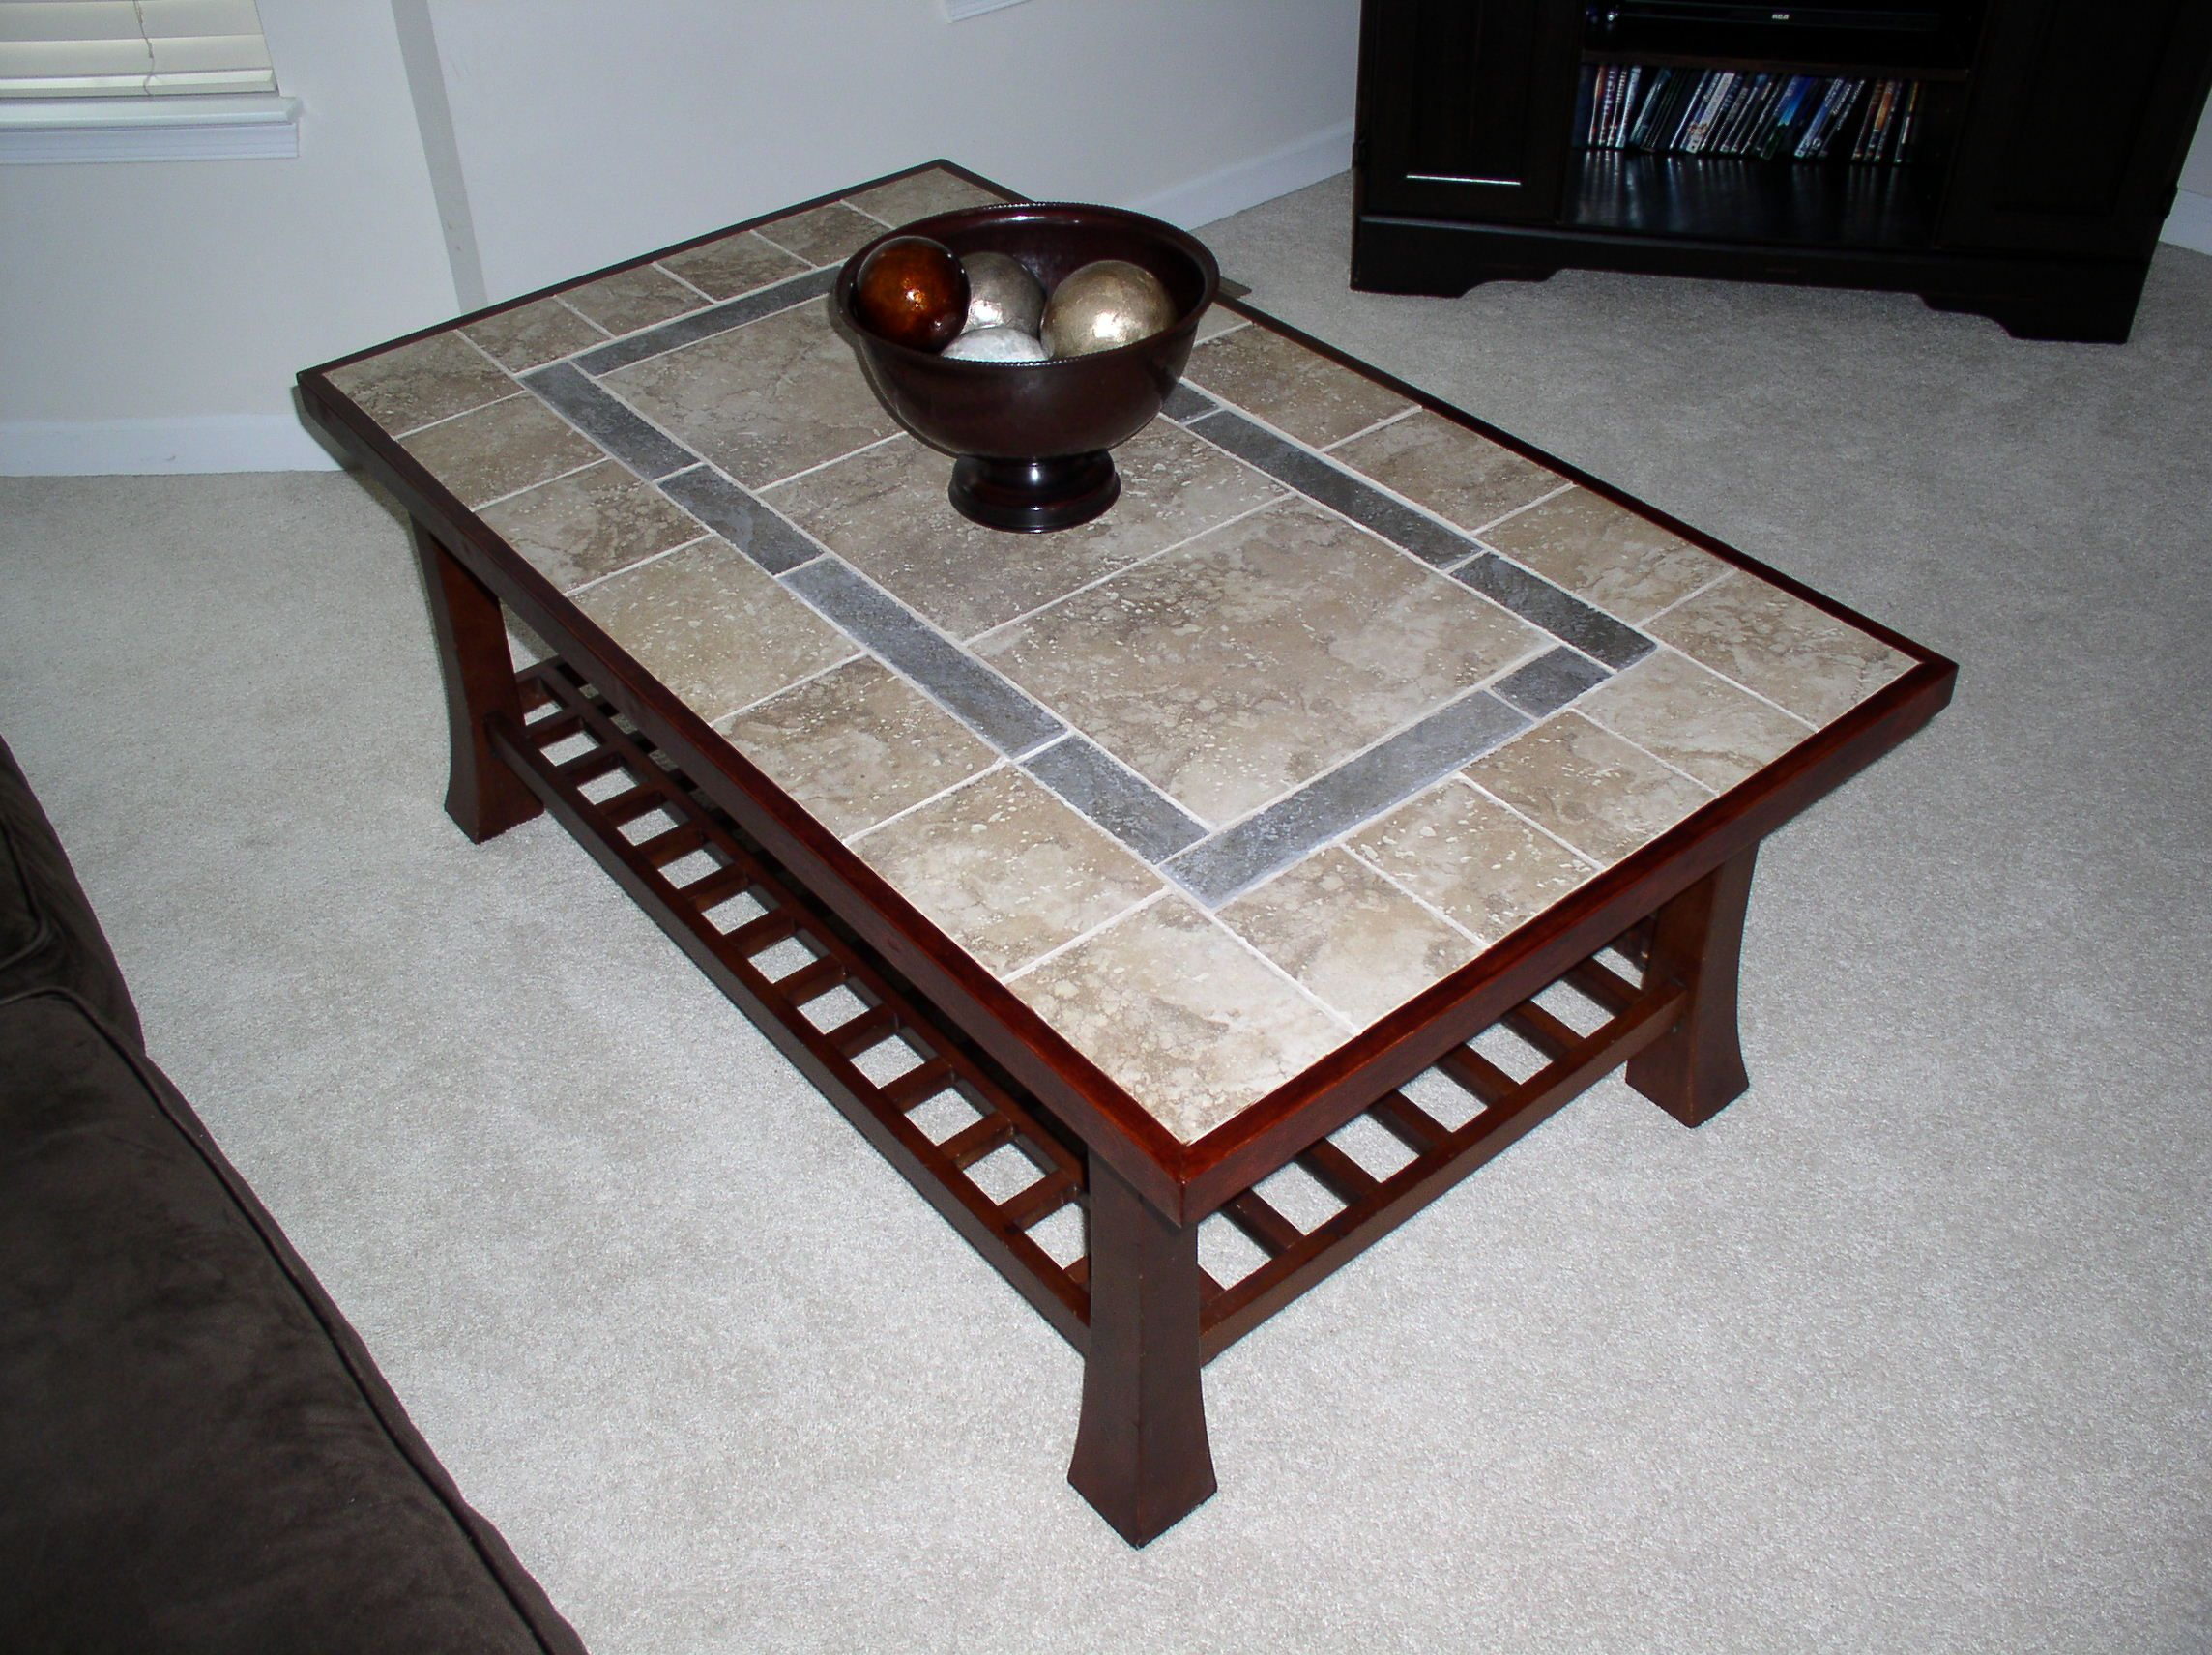 Refinished coffee table with a tile top and new wood moulding my diy projects pinterest Coffee table top ideas